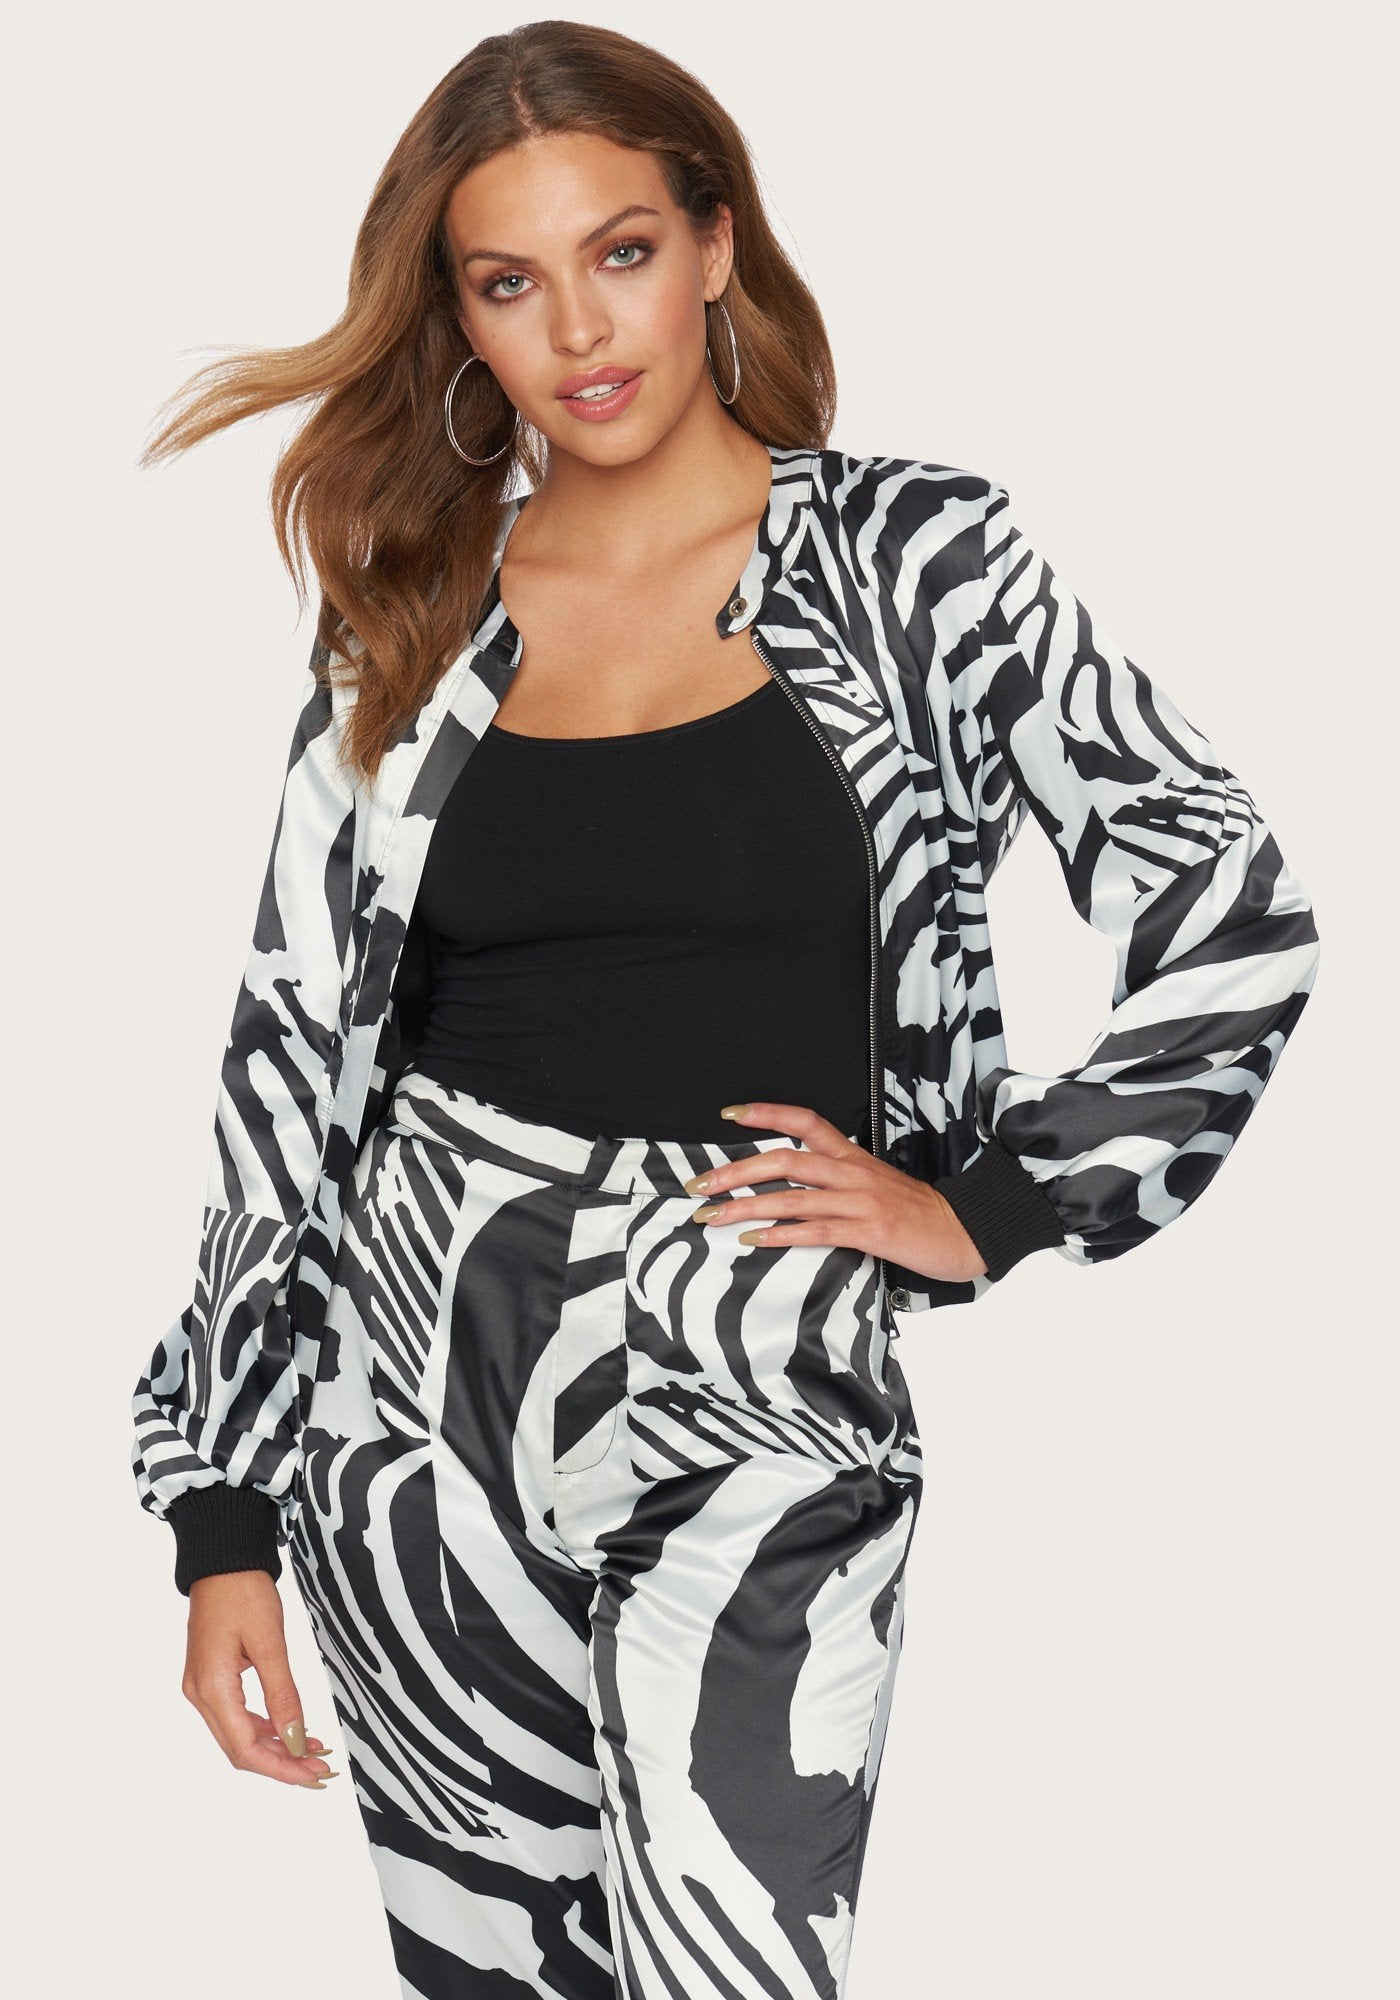 Image of Bebe Women's Print Charmeuse Bomber Jacket, Size Medium in Abstract Zebra Spandex